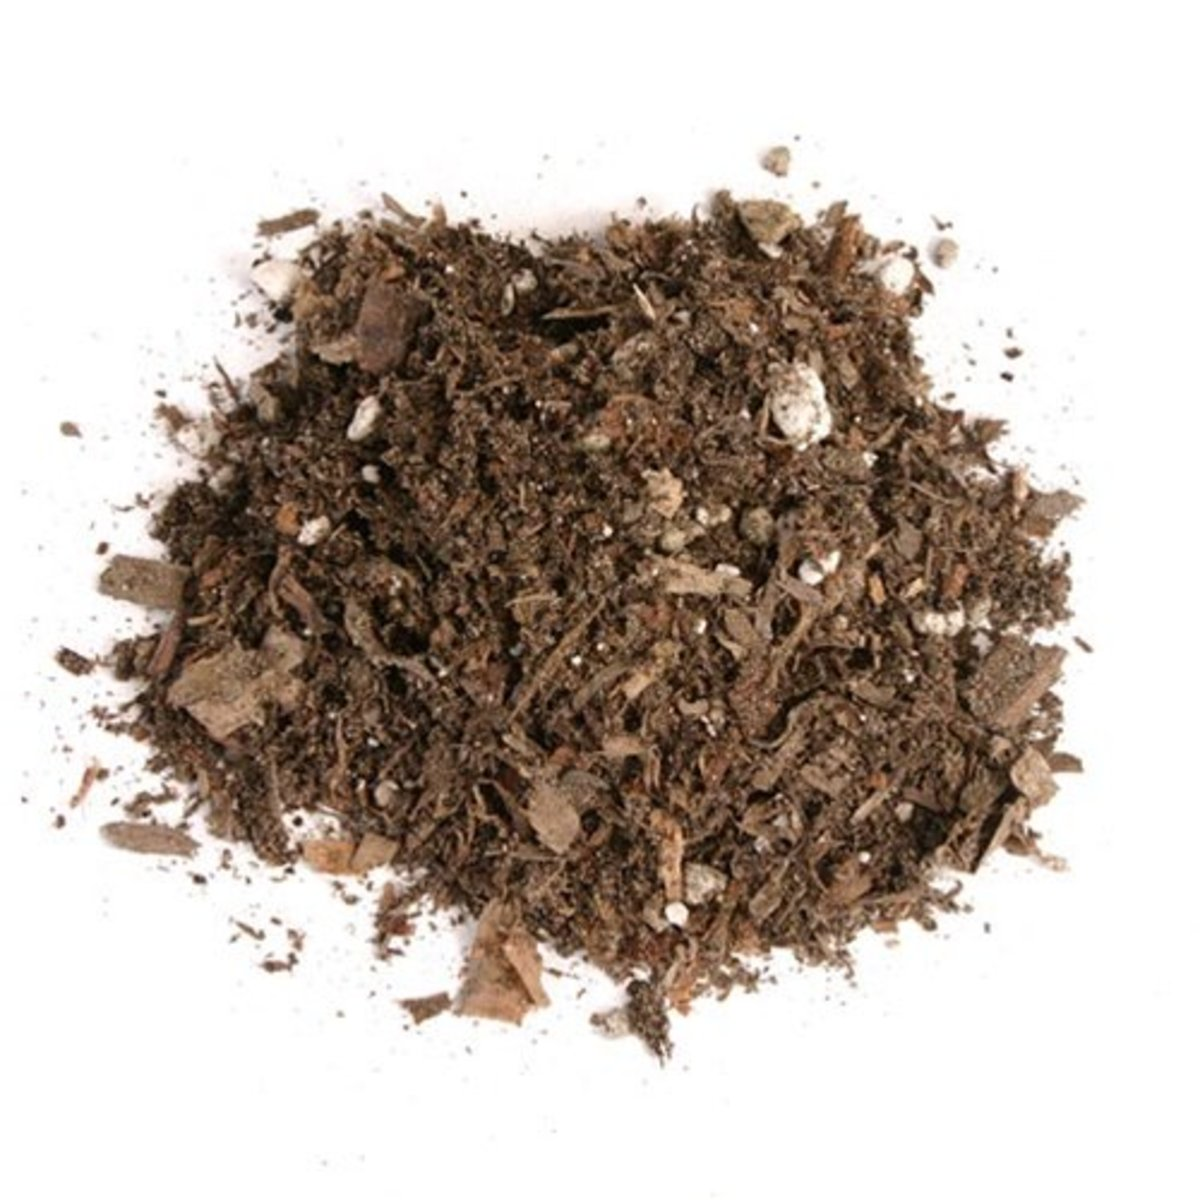 Peat moss. Once wet, peat moss is an amazing bonding agent.